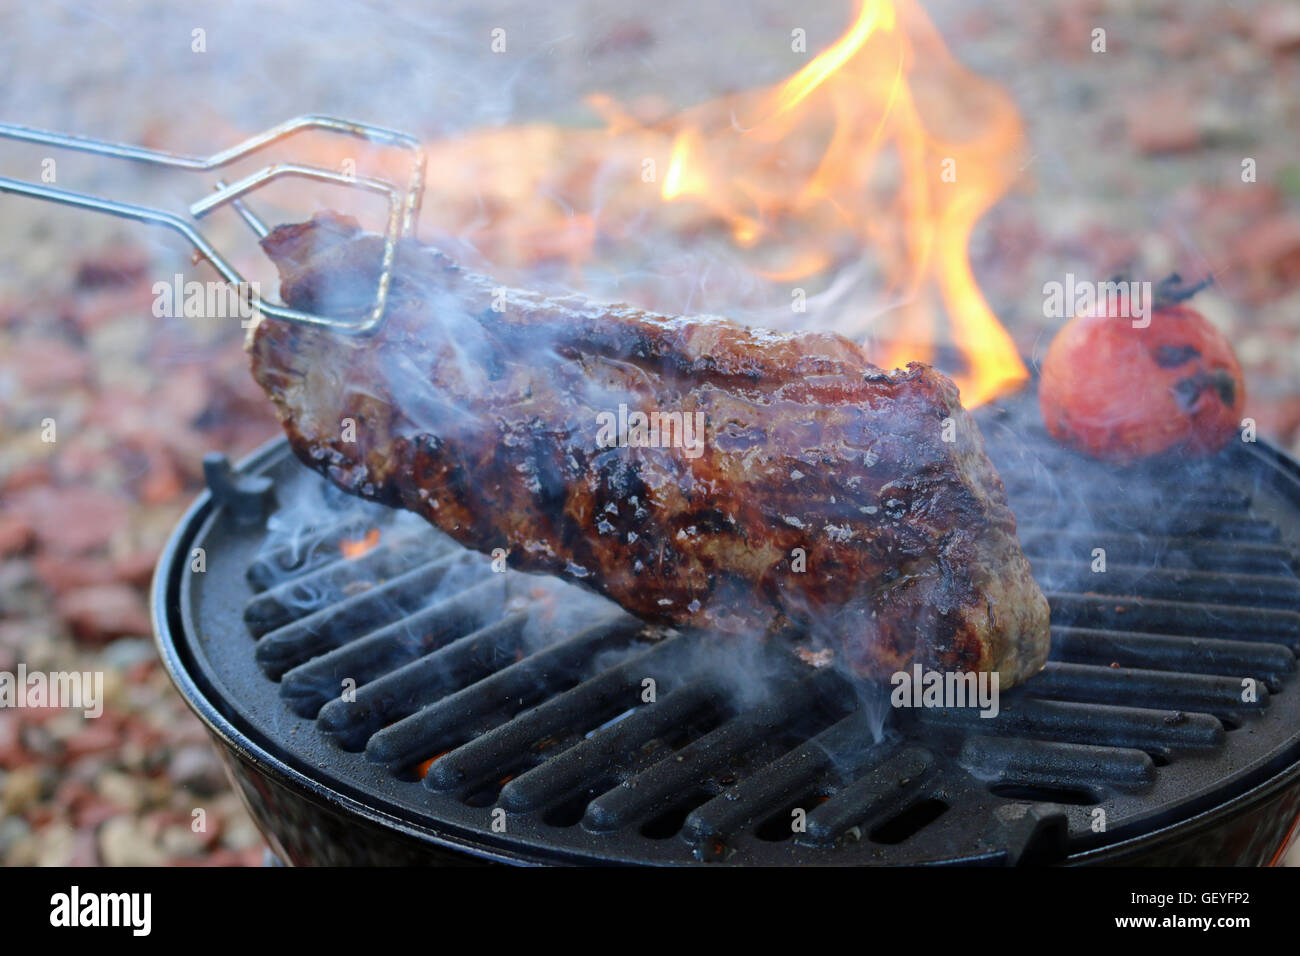 Steak on a barbeque held by tongs - Stock Image